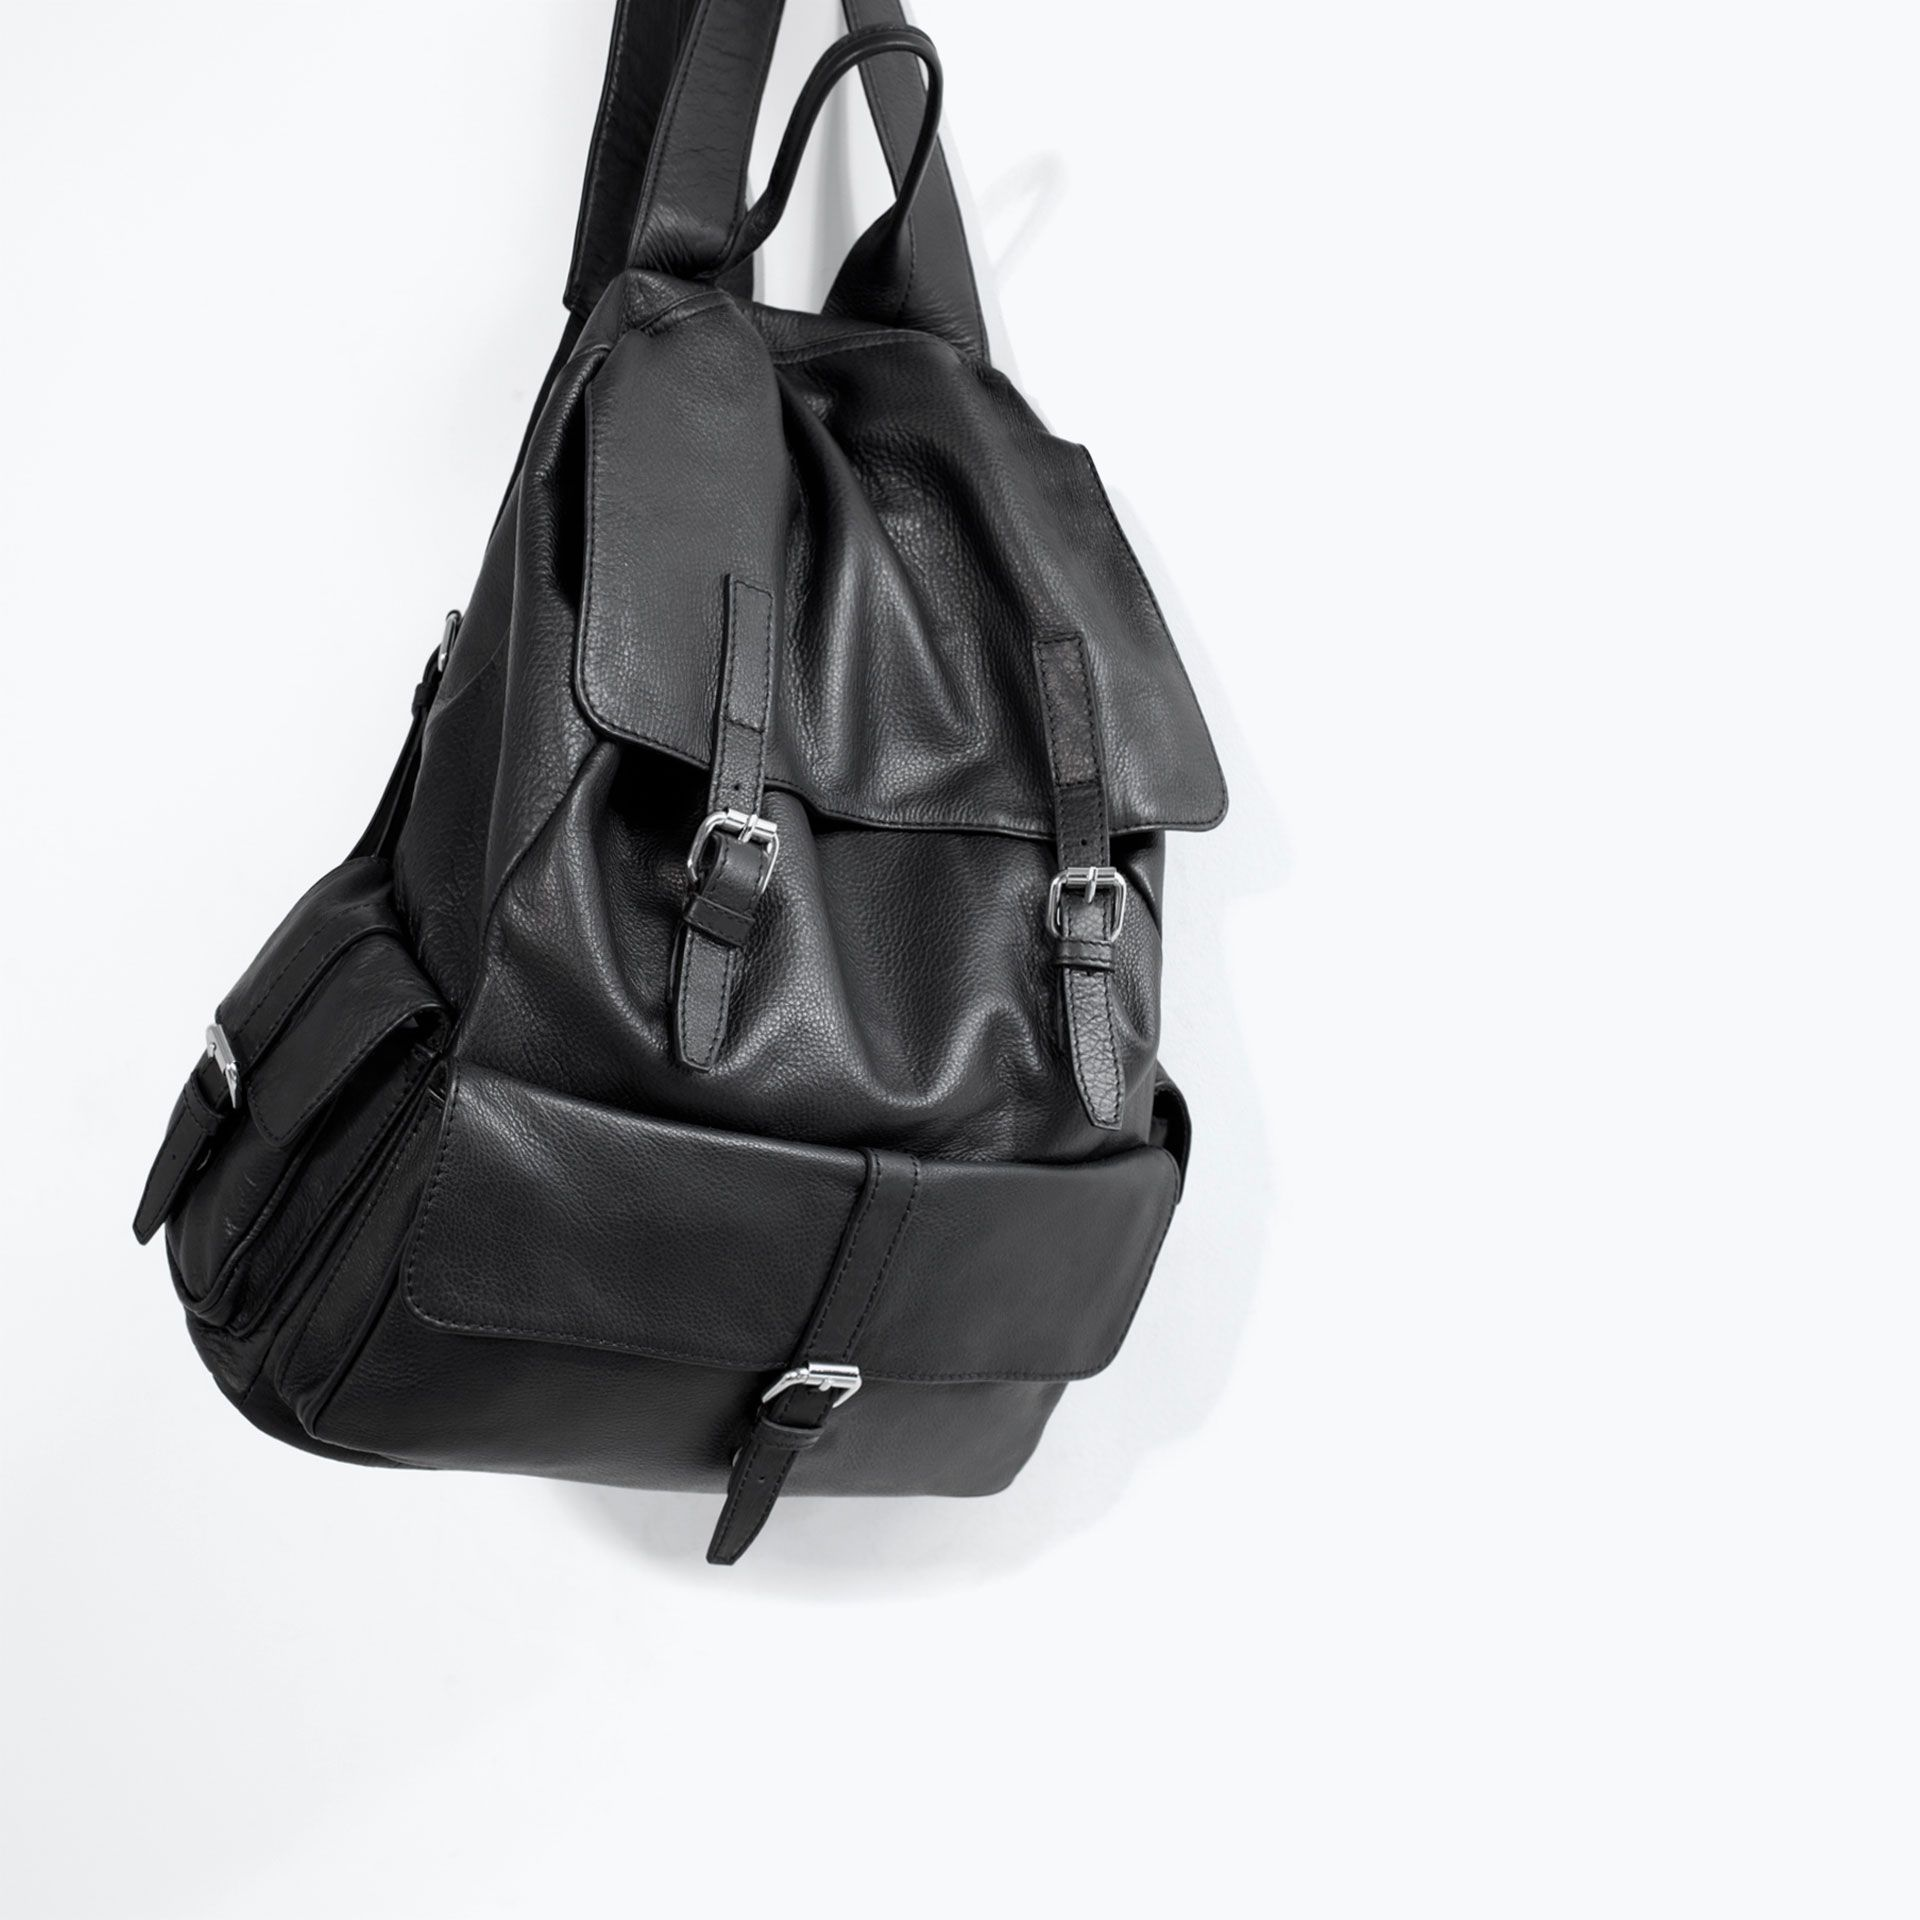 Black Leather Backpack Zara Fairway Golf And Print Double Strap Bag